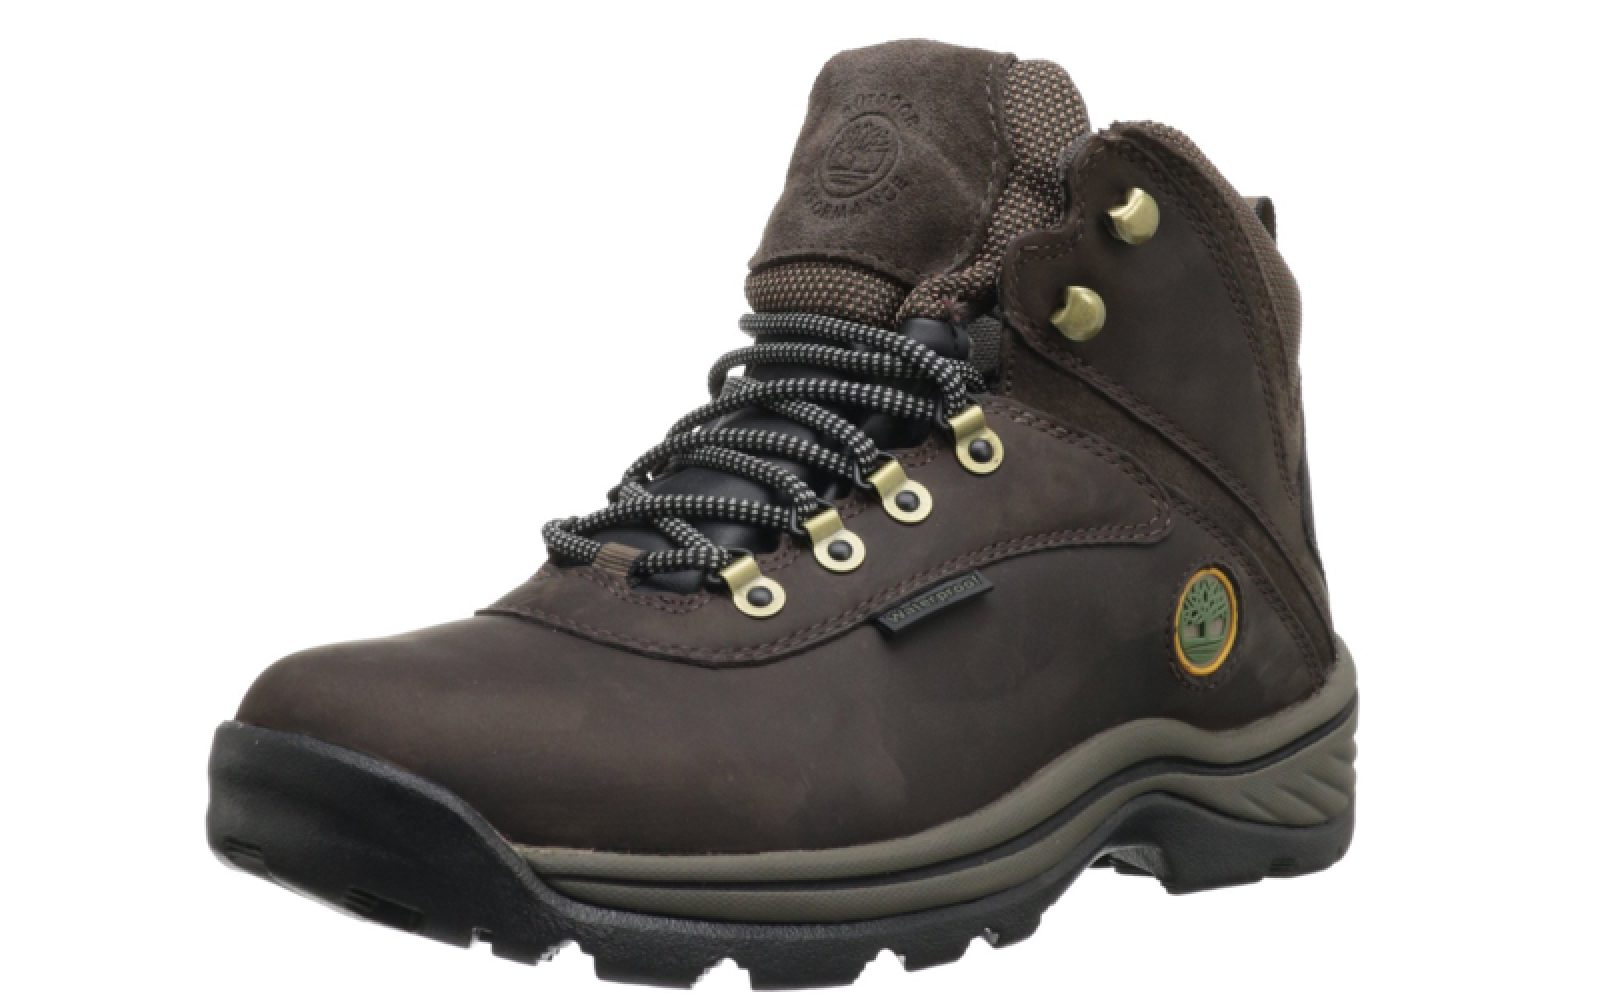 f4e832304824 Amazon Gold Box – Up to 50% Off Timberland Men s Shoes  White Ledge  Waterproof Boots  56 shipped